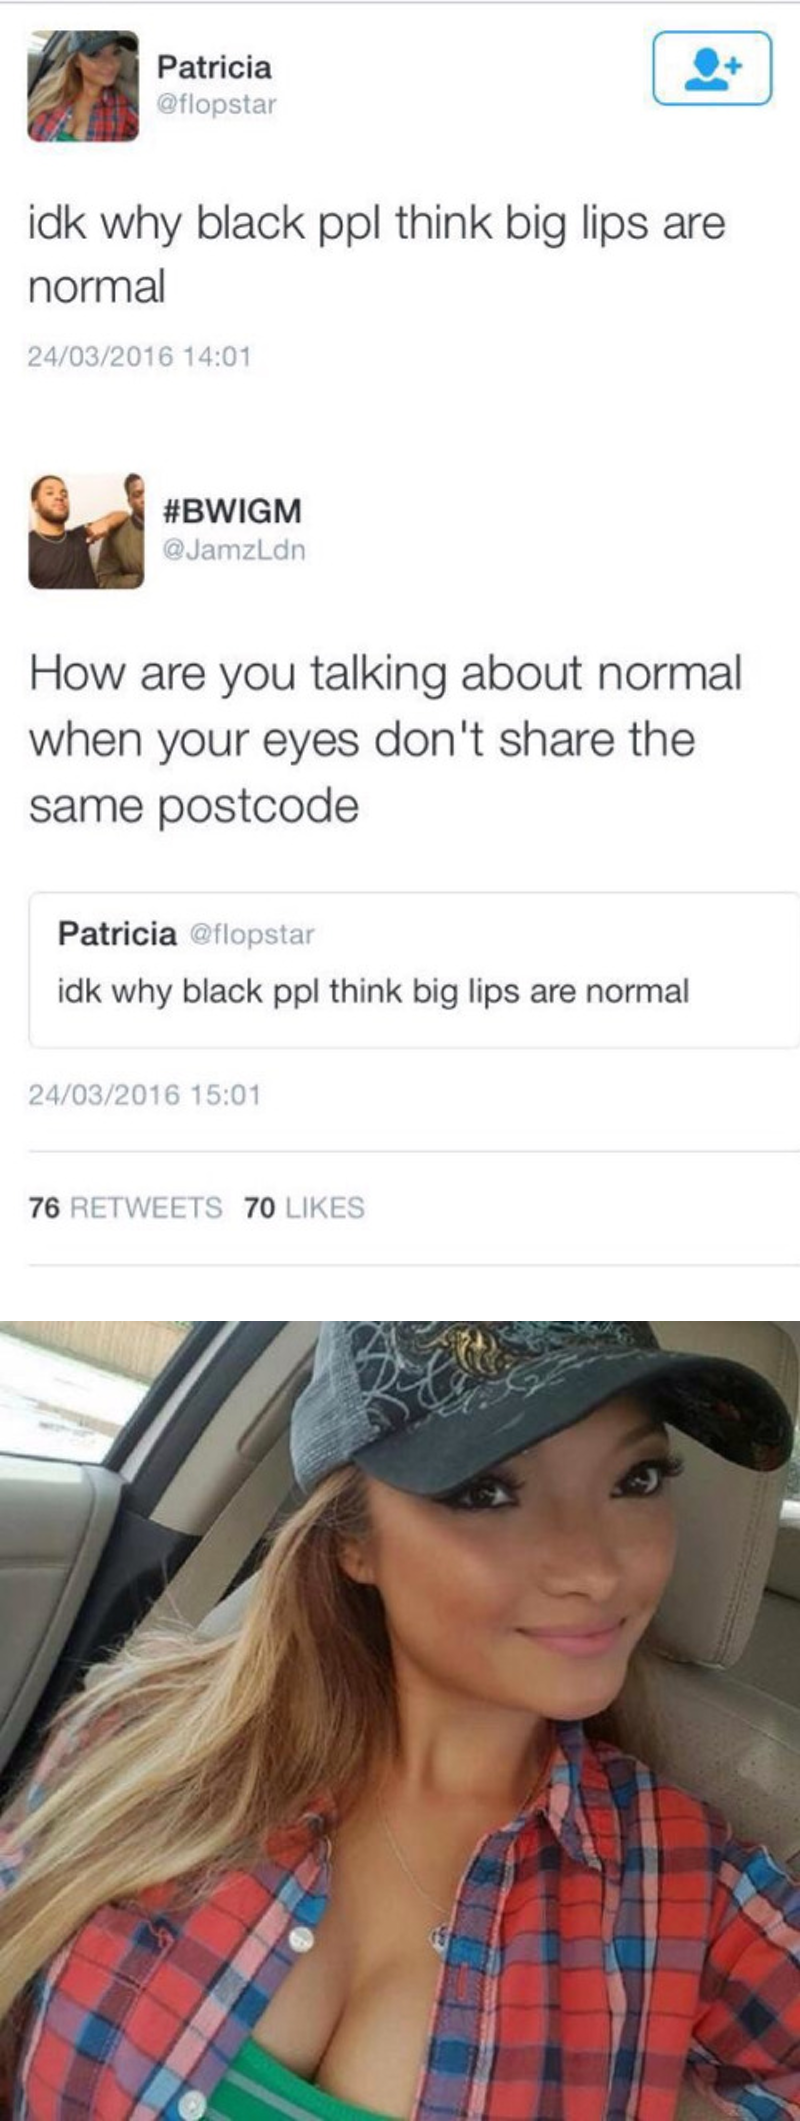 eyes don't share the same postcode